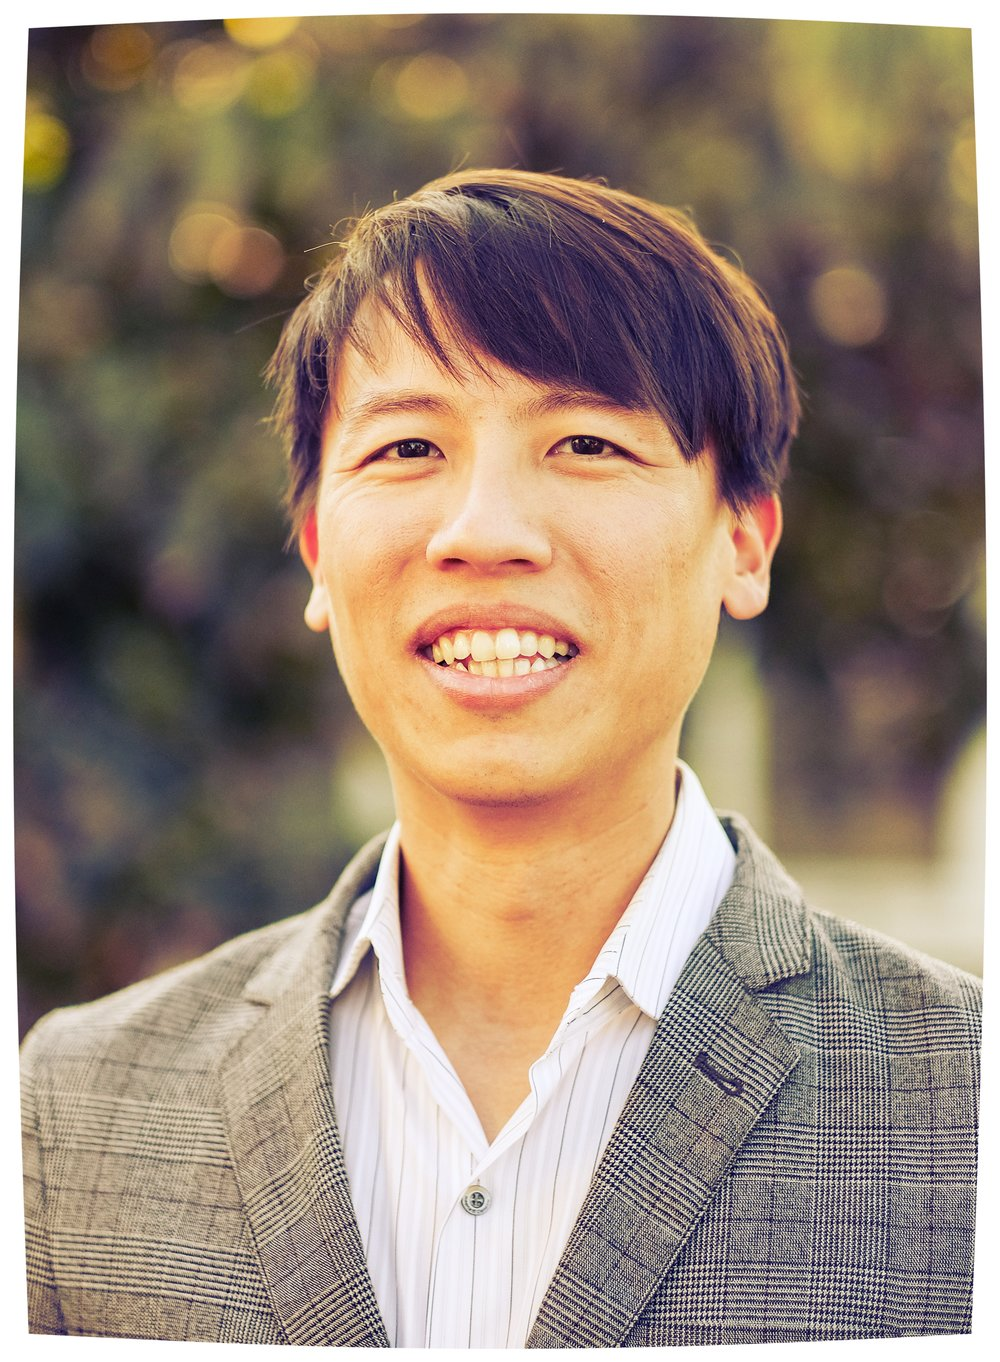 Eric Chang - I spent my childhood in Taiwan and in Vancouver, Canada, but discovered my fondness for the sun and the desert after moving to Southern California for college. After graduating from UCLA (as a double Bruin), I practiced law in Orange County and Chicago, specializing in intellectual property. Although I enjoyed living in each of these places, It was my move to beautiful San Diego that marked the turn to real property. I believe San Diego is truly the finest city of them all, and I enjoy combining my passion for client advocacy with the feeling of helping others build long-lasting roots here. If you would like to chat about your now or future home, I would love to hear from you.